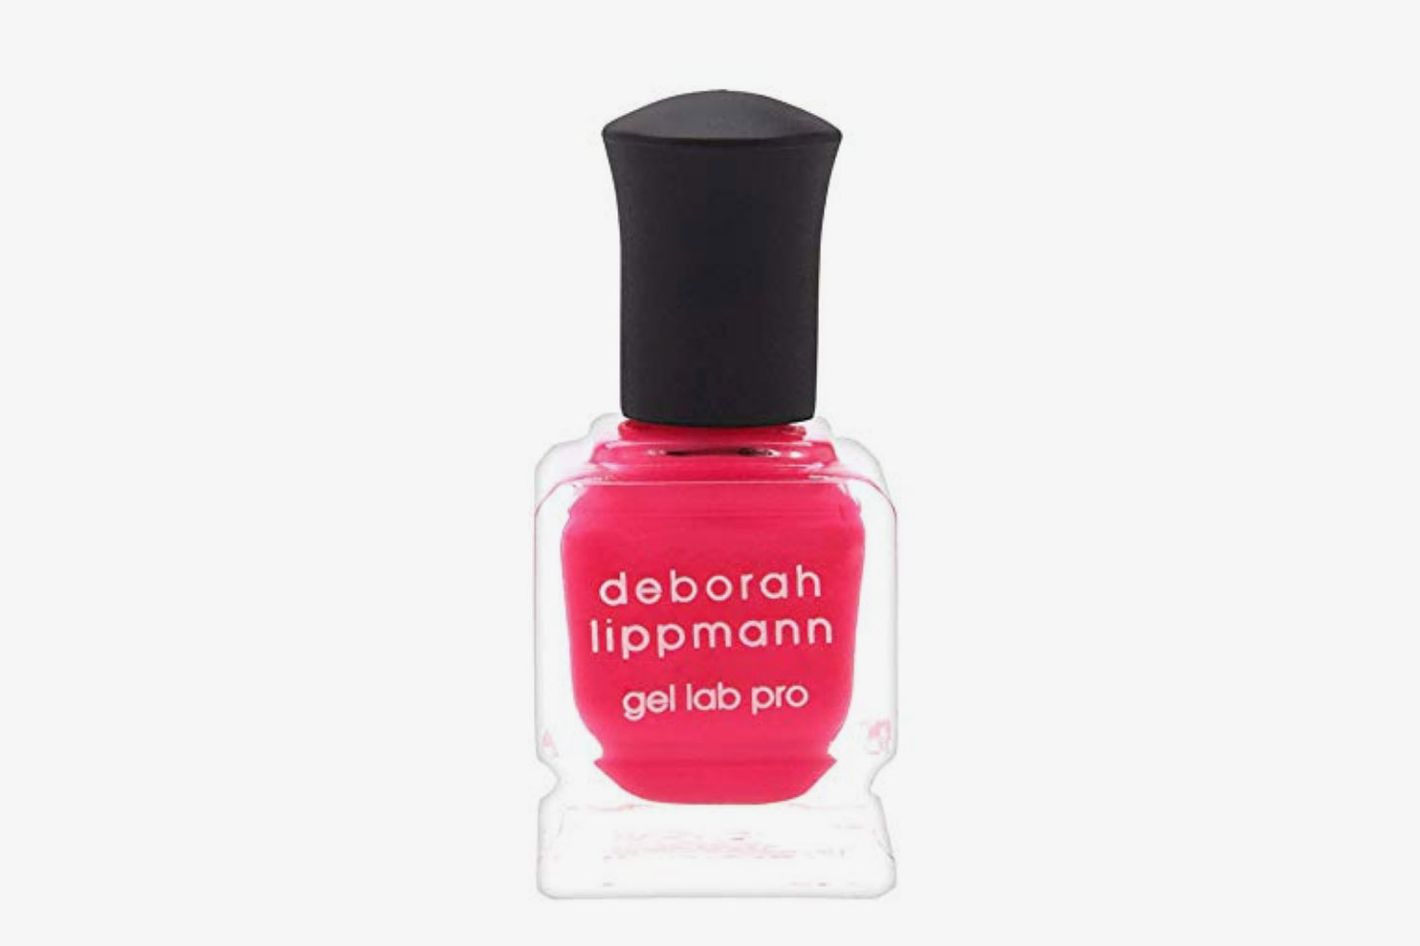 Deborah Lippmann Gel Lab Pro Color in Hot Hot Hot